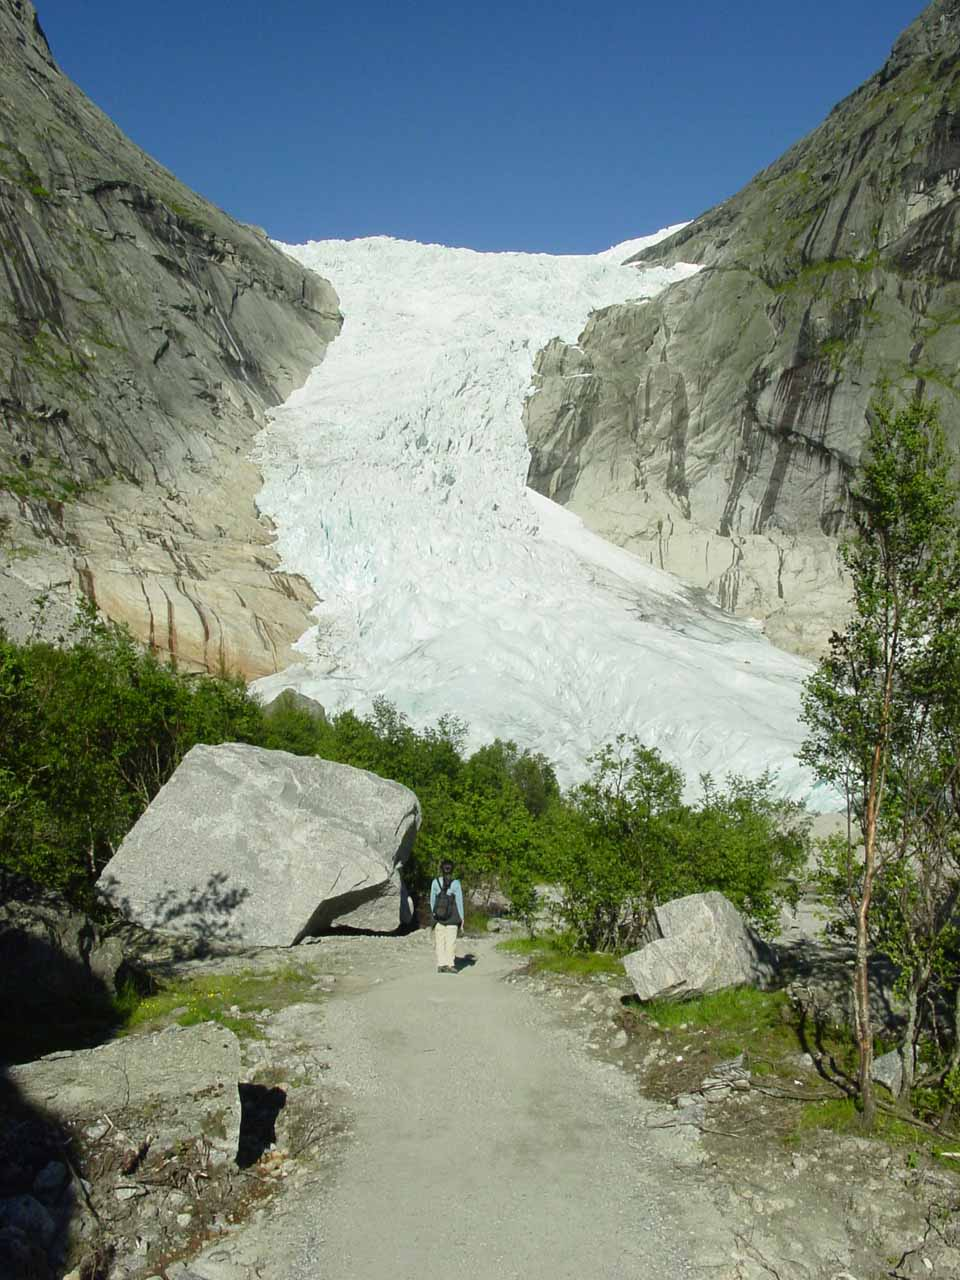 Julie now starting to navigate through boulders before getting up to the terminus of Briksdalsbreen